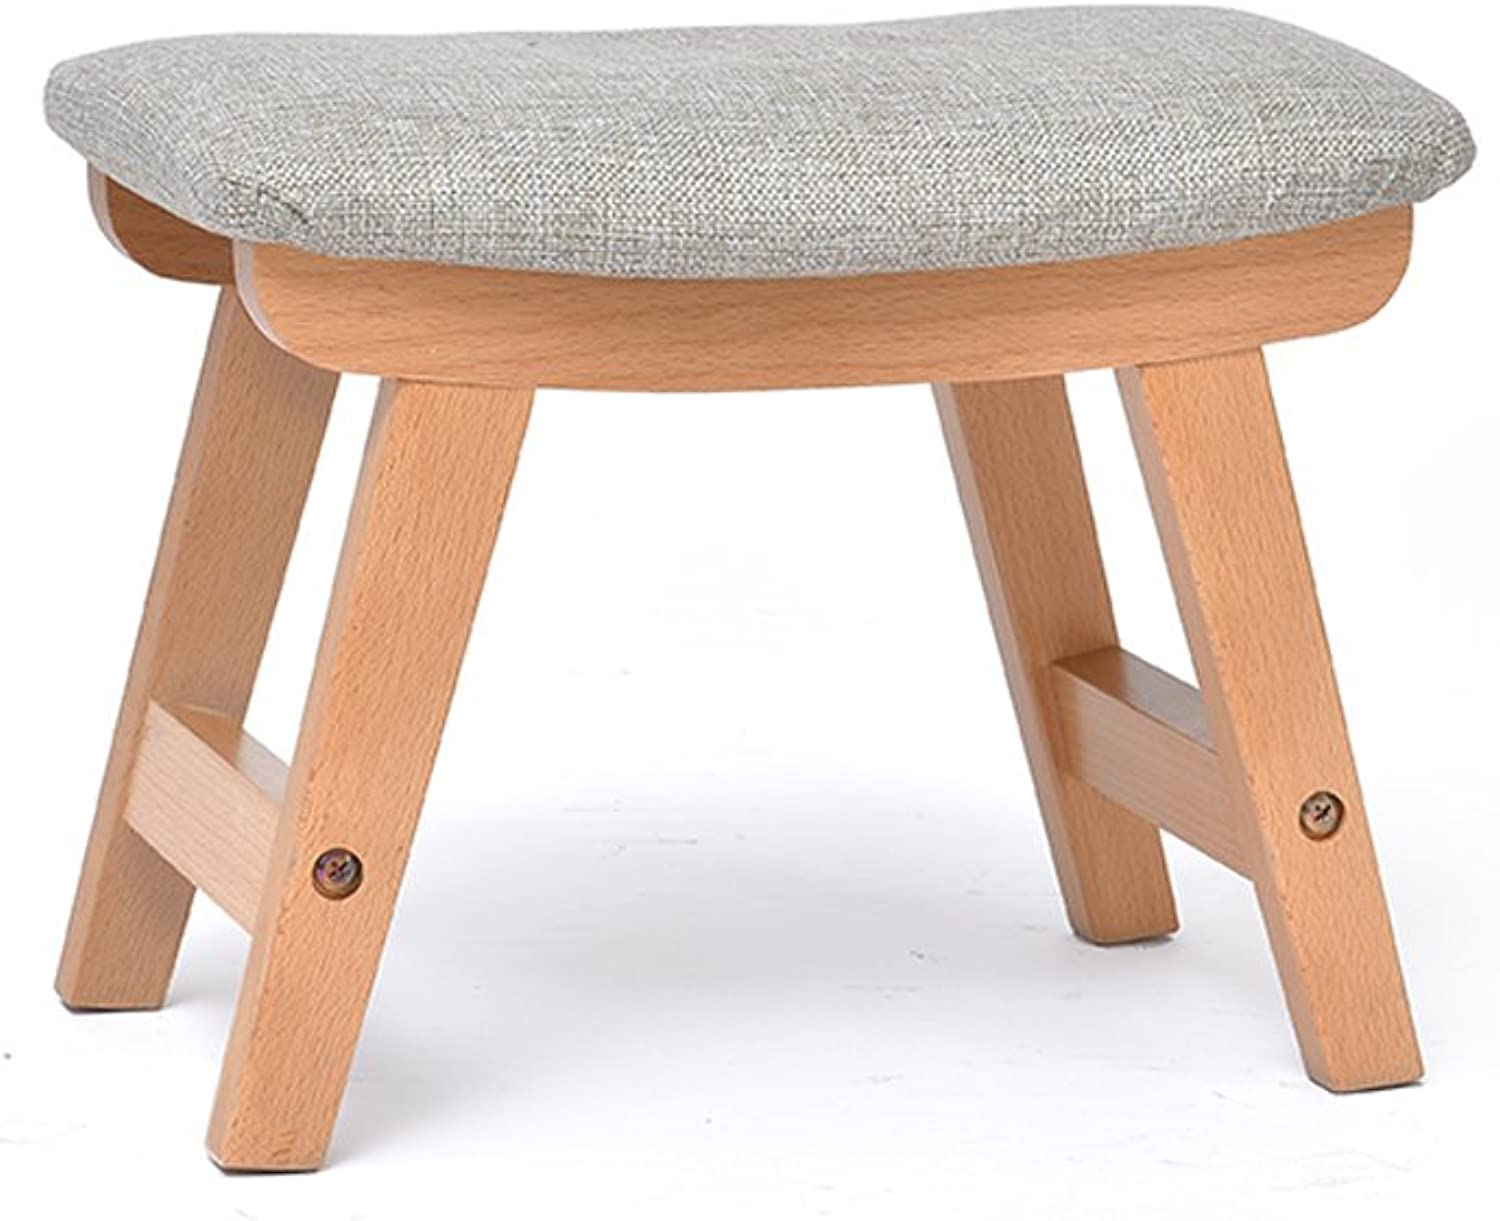 LIUXUEPING Solid Wood Stool Creative Small Bench Adult shoes Bench Sofa Change shoes Bench Fabric Stool (color   Log Pigment)